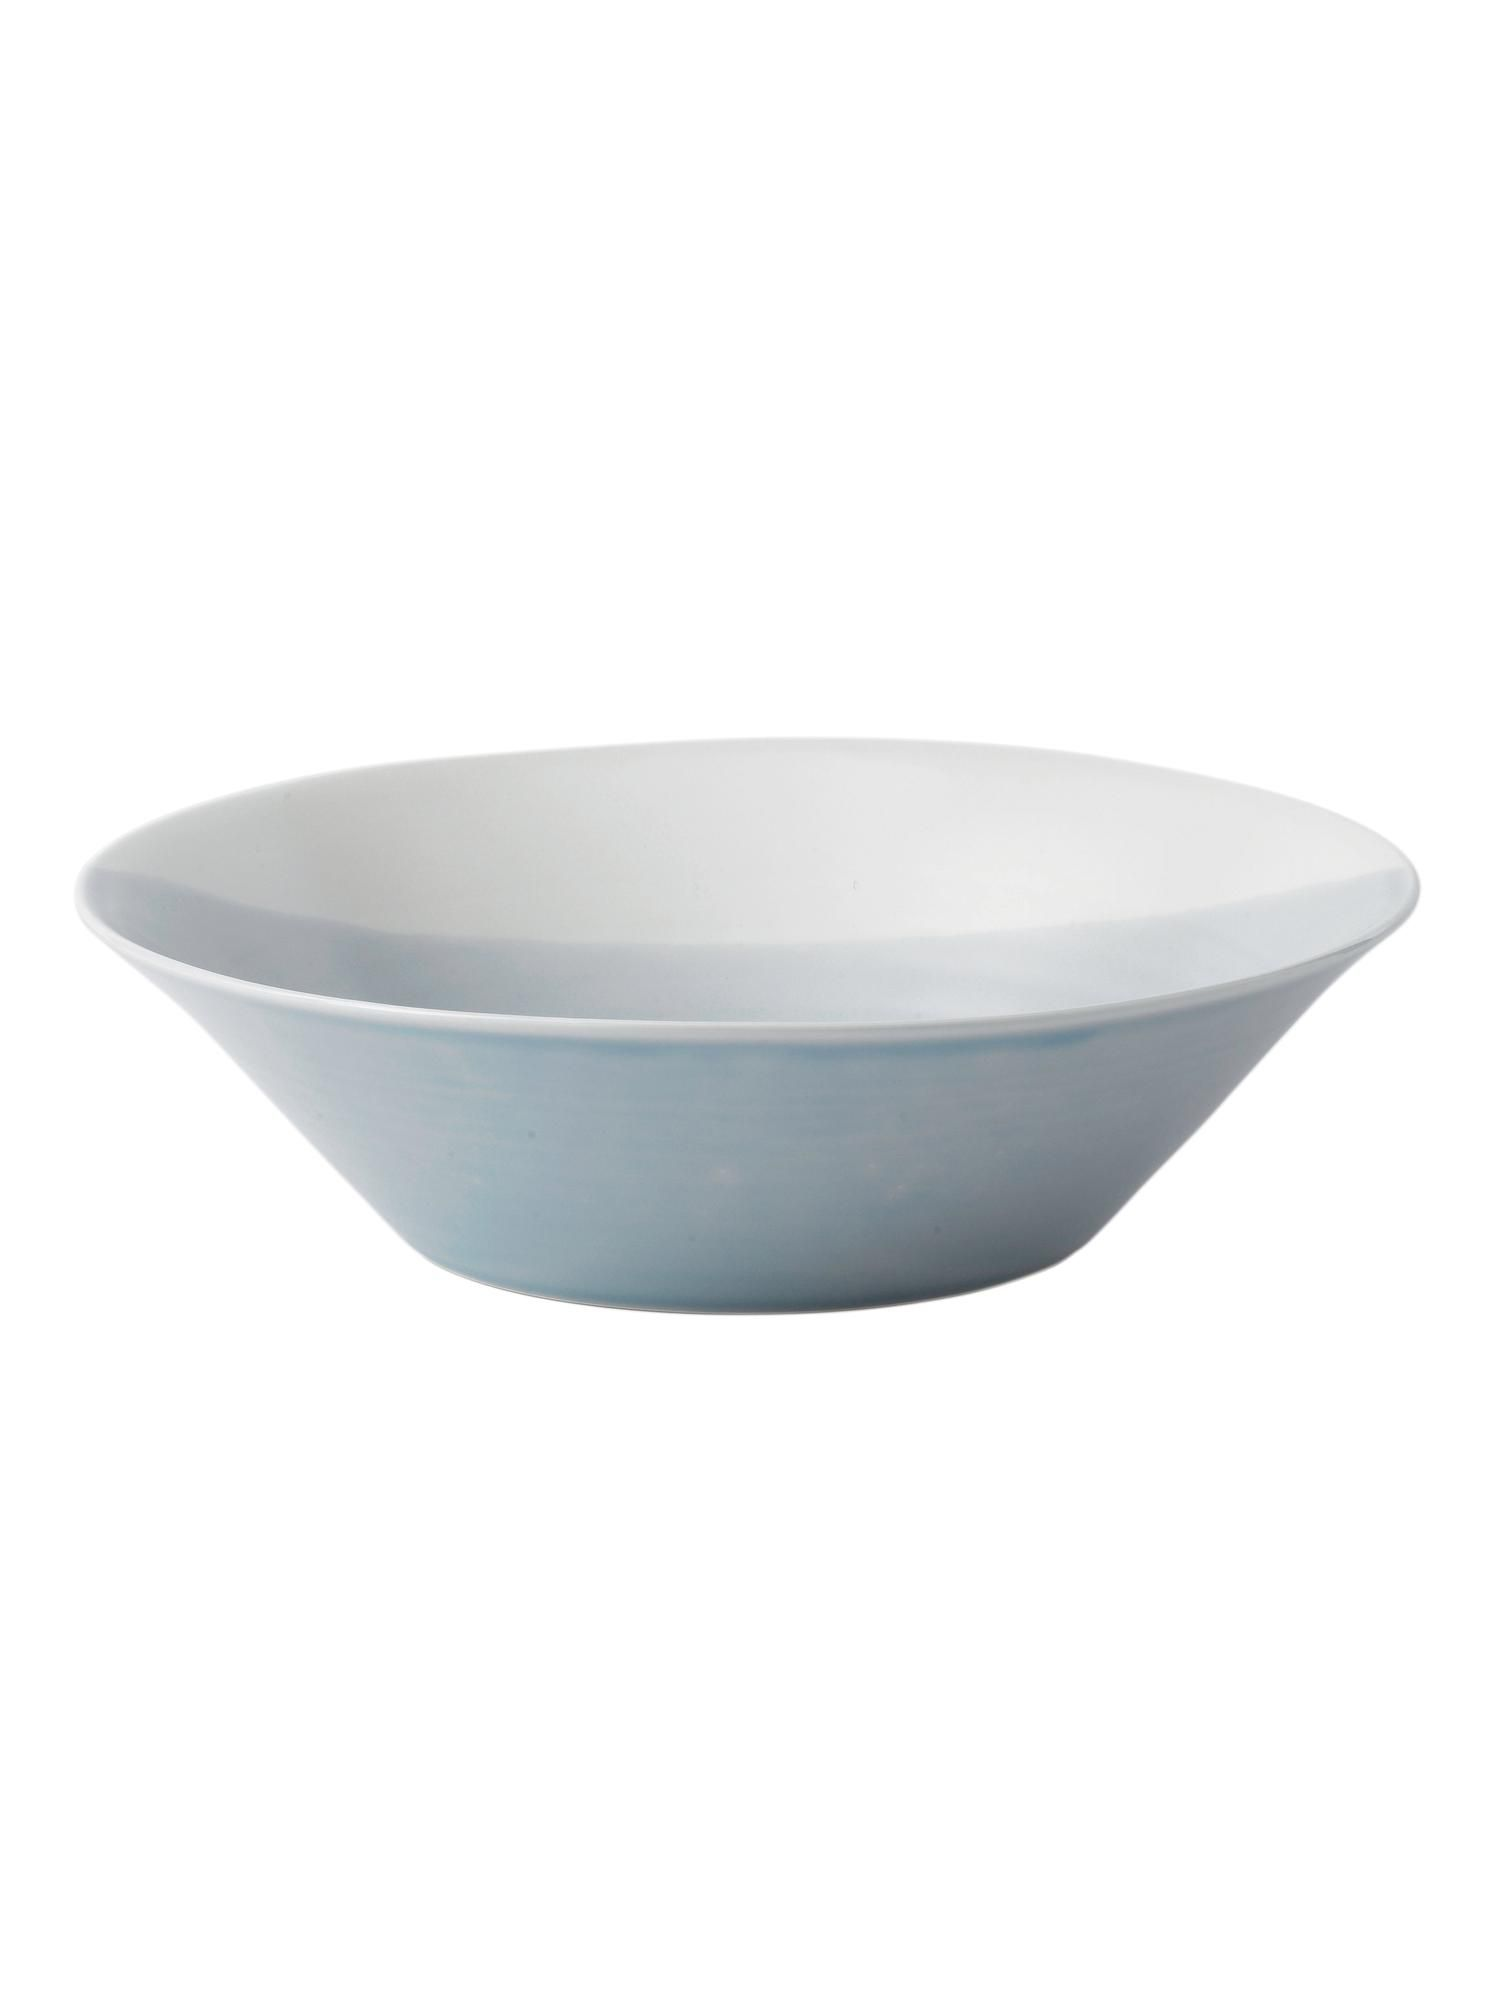 1815 blue serving bowl 29cm